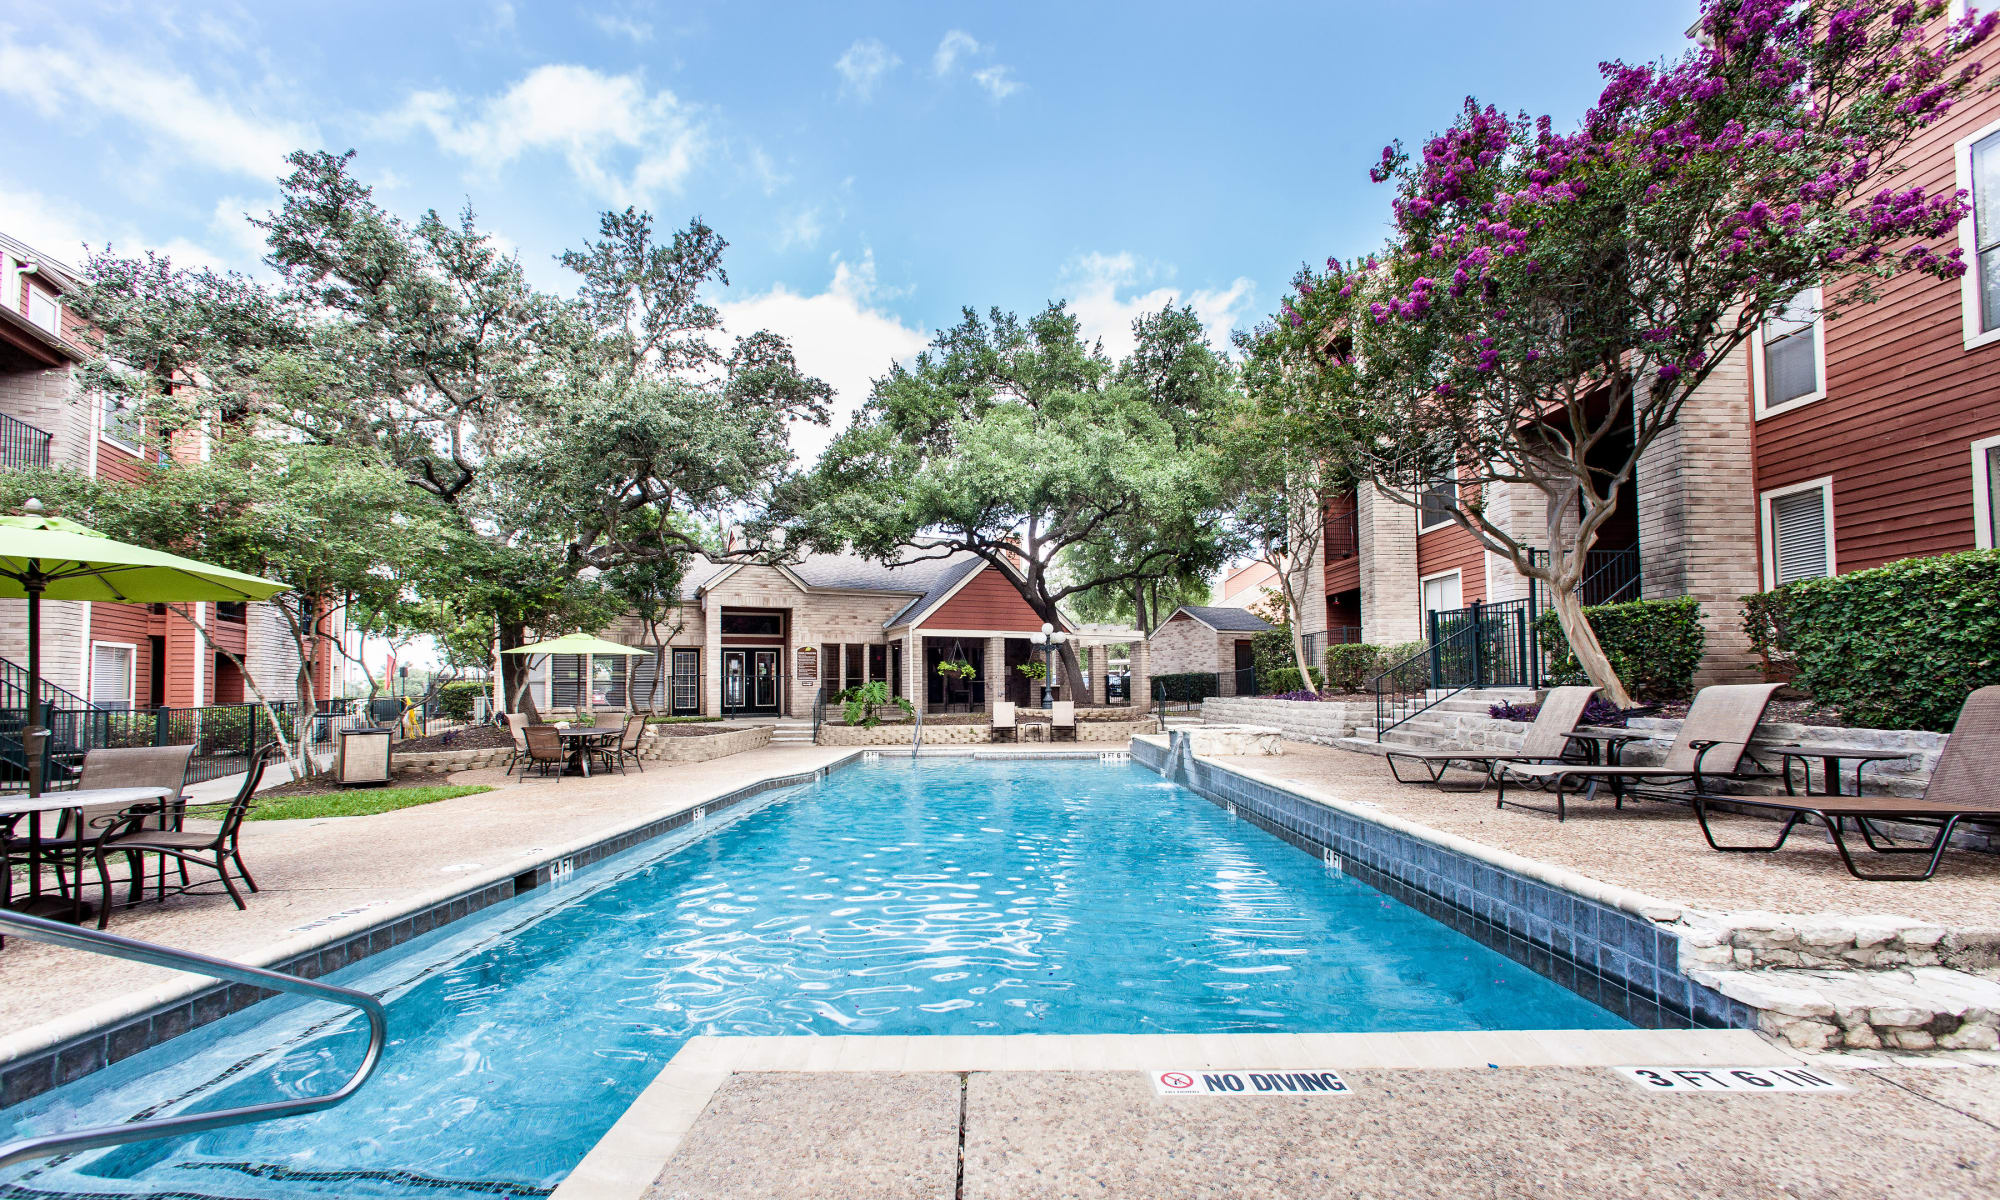 Apartments at Ashley Oaks in San Antonio, Texas